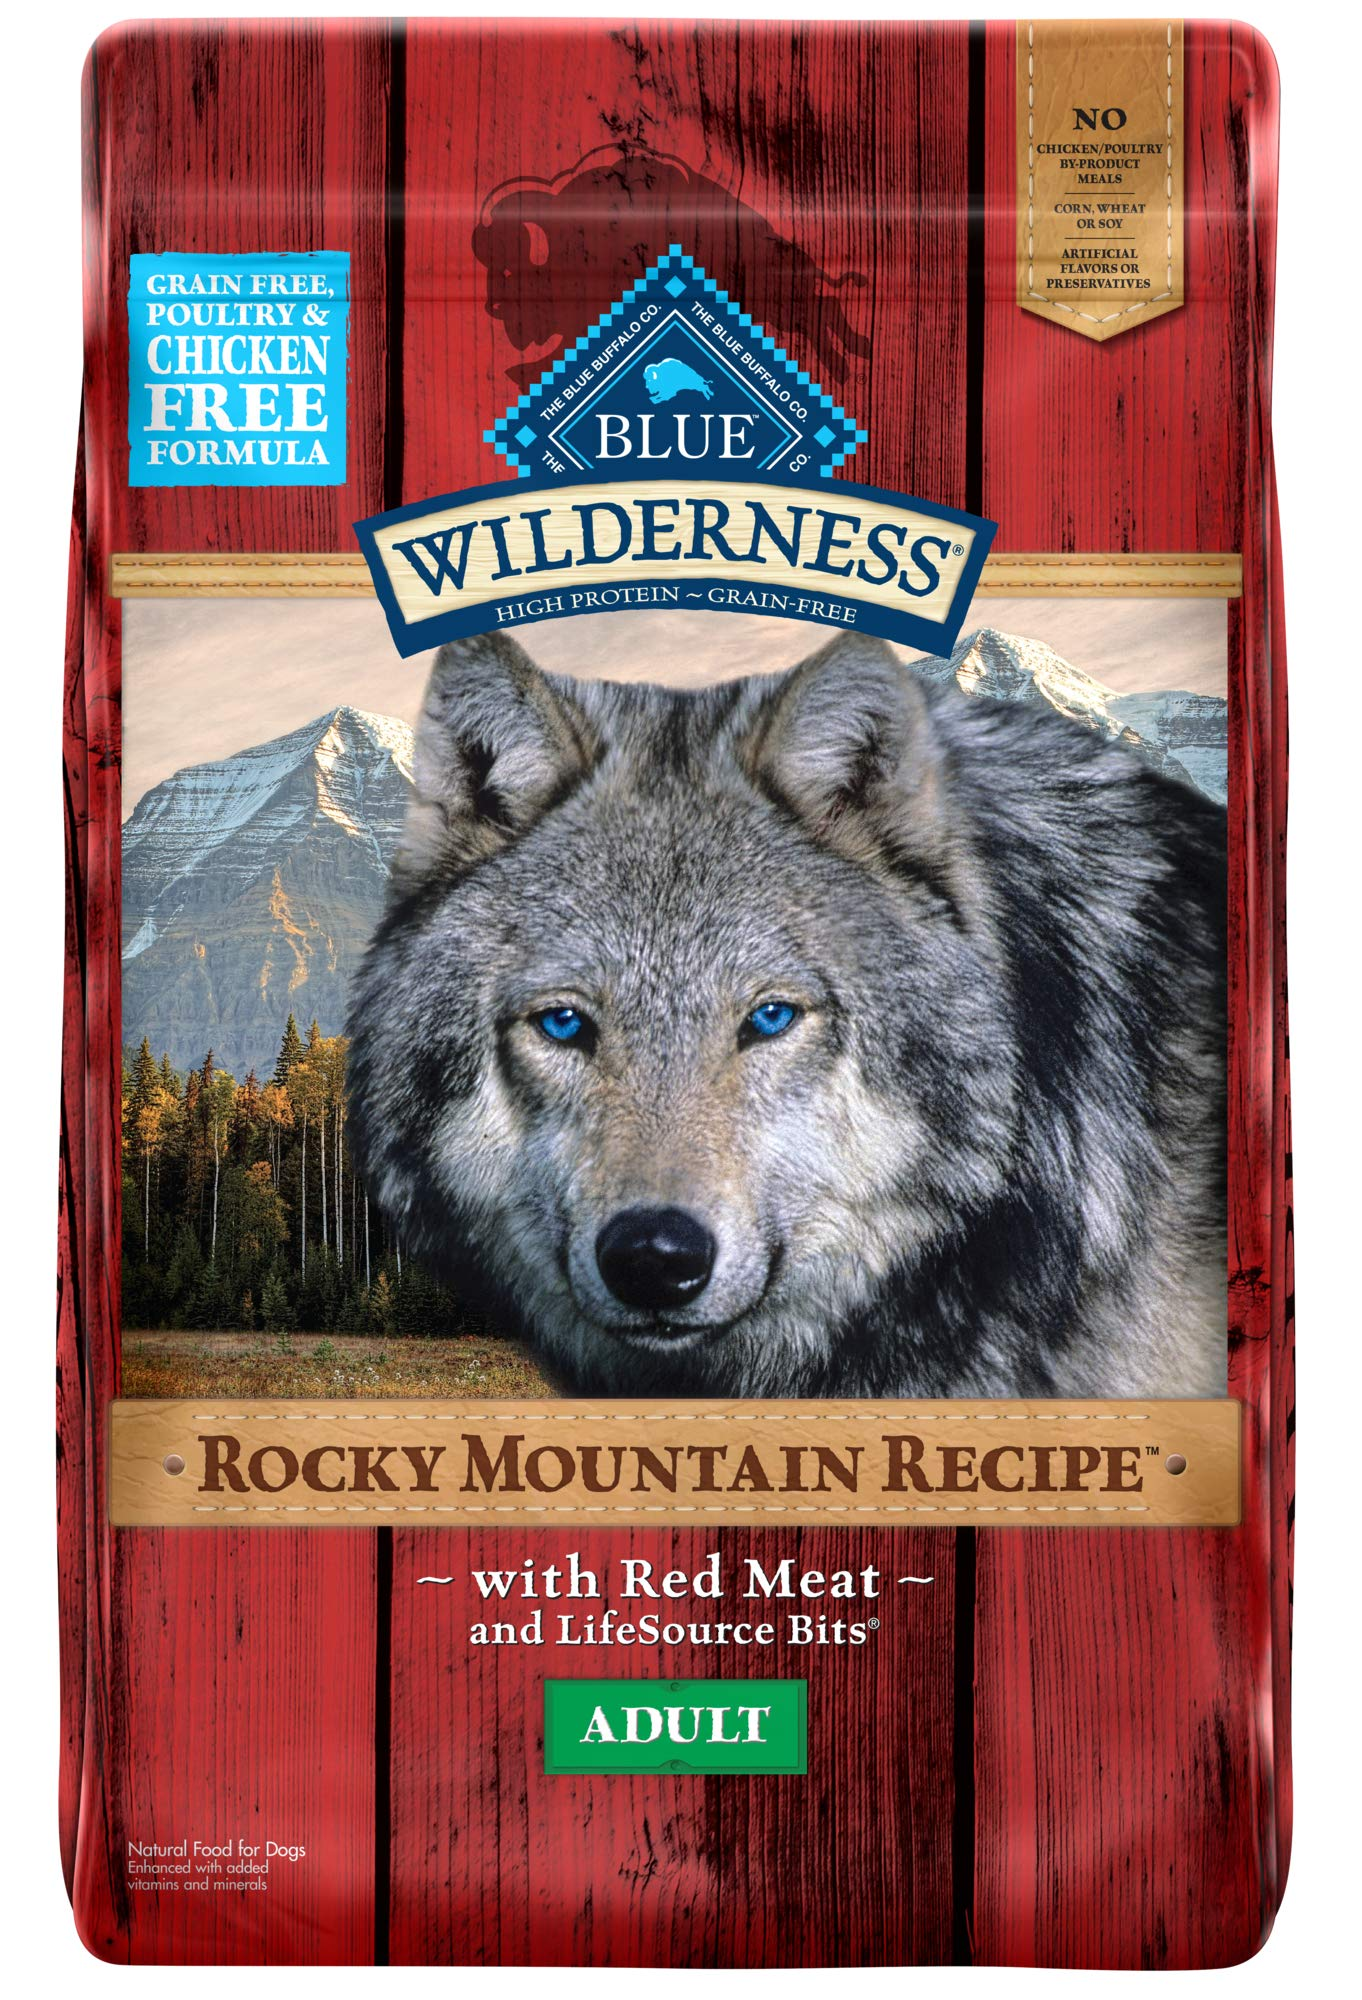 Blue Buffalo Wilderness Rocky Mountain Recipe High Protein Grain Free, Natural Adult Dry Dog Food, Red Meat 22-lb by Blue Buffalo